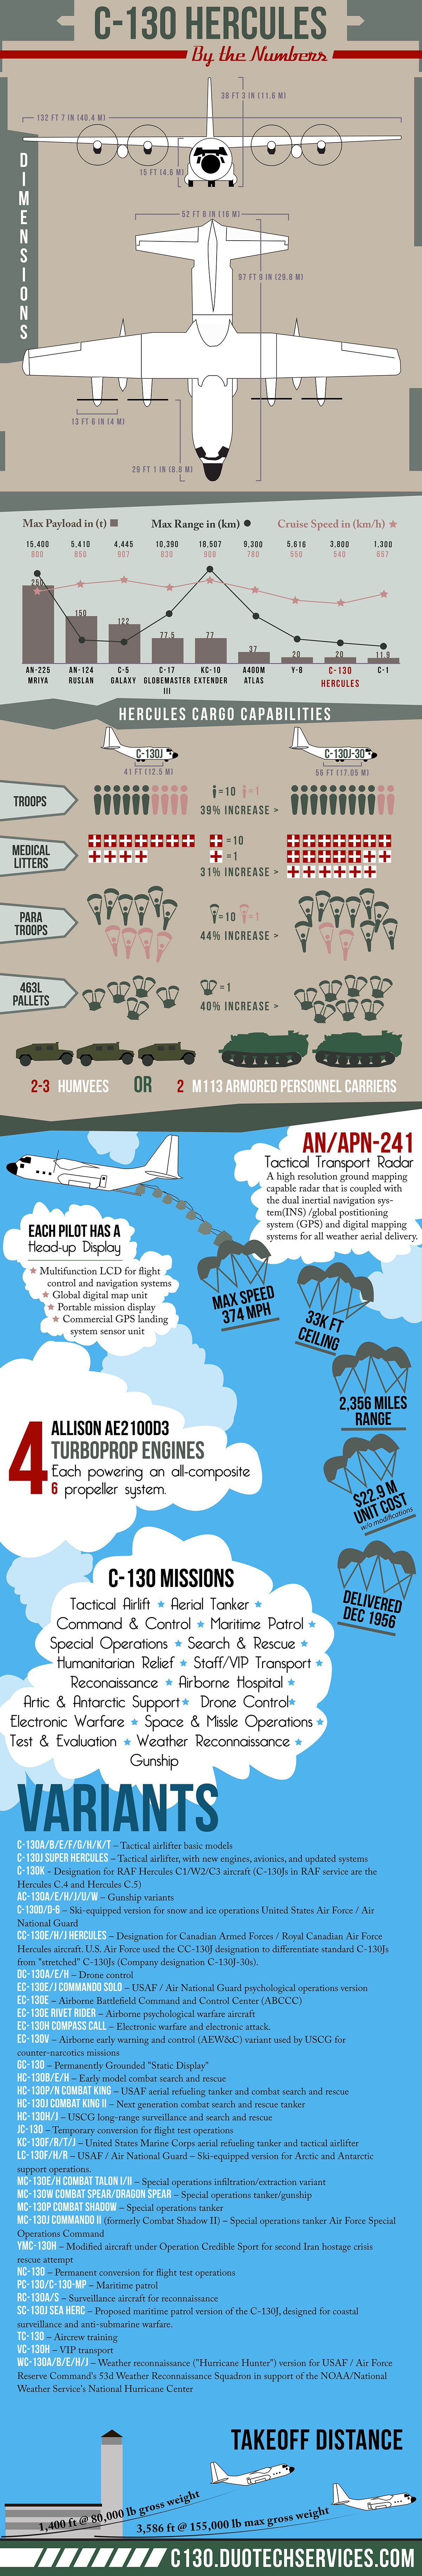 C-130 Hercules Facts Infographic